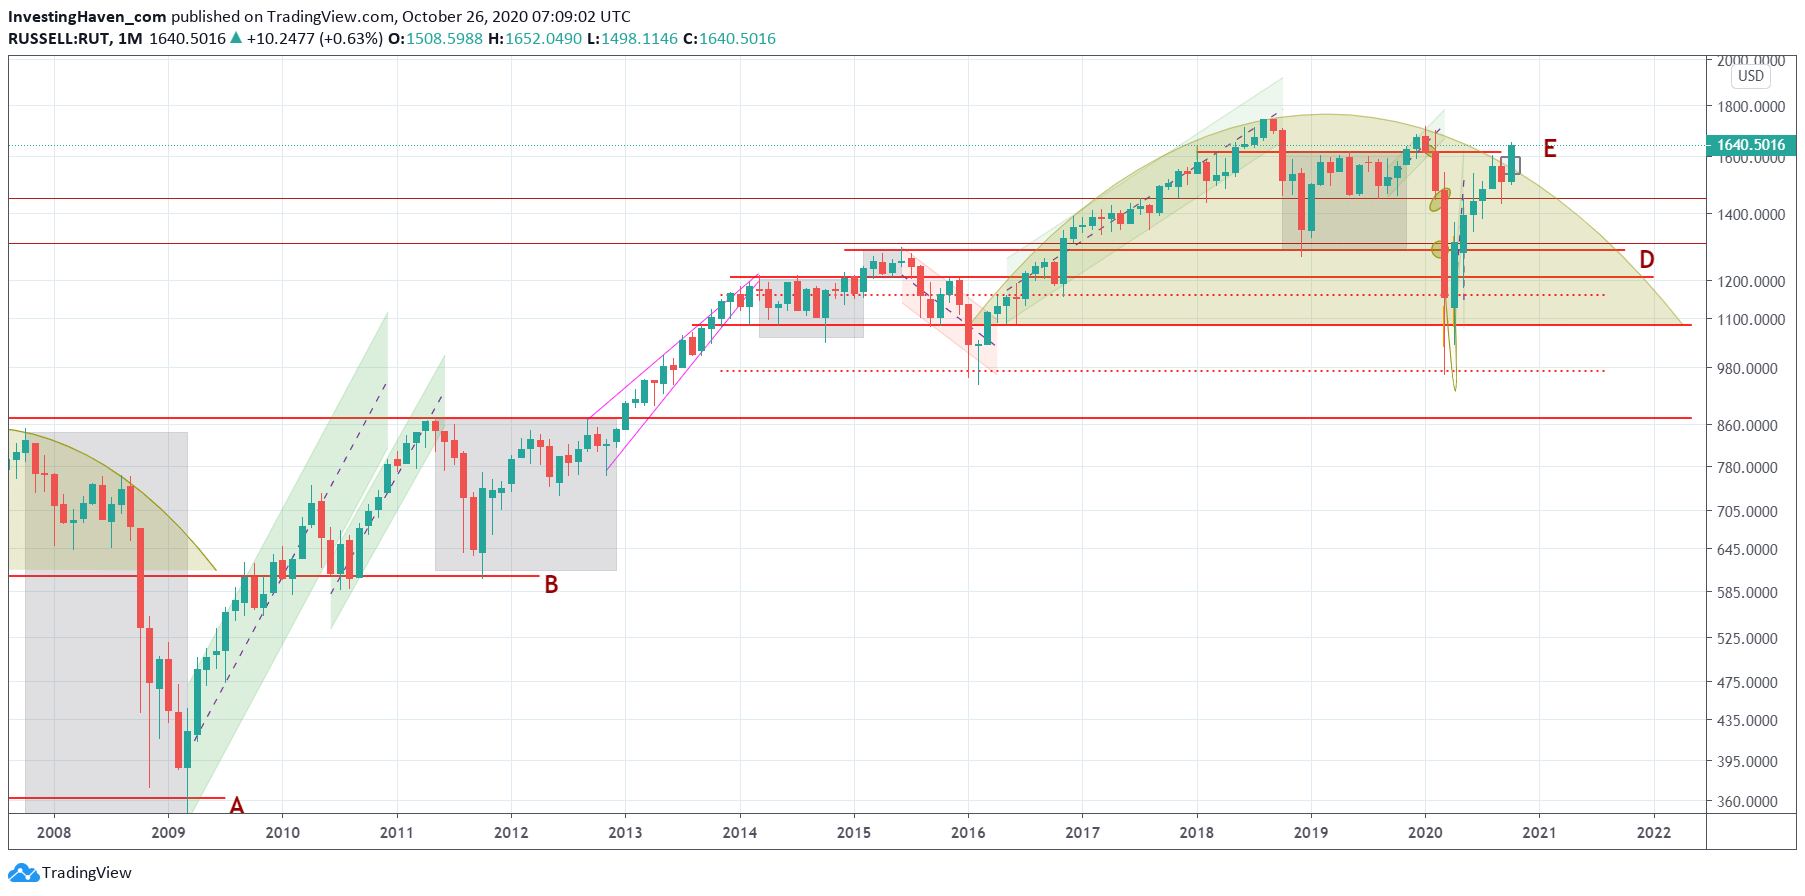 A Dow Jones Forecast For 2021 *New All Time Highs pertaining to 2021 Rut Forecast